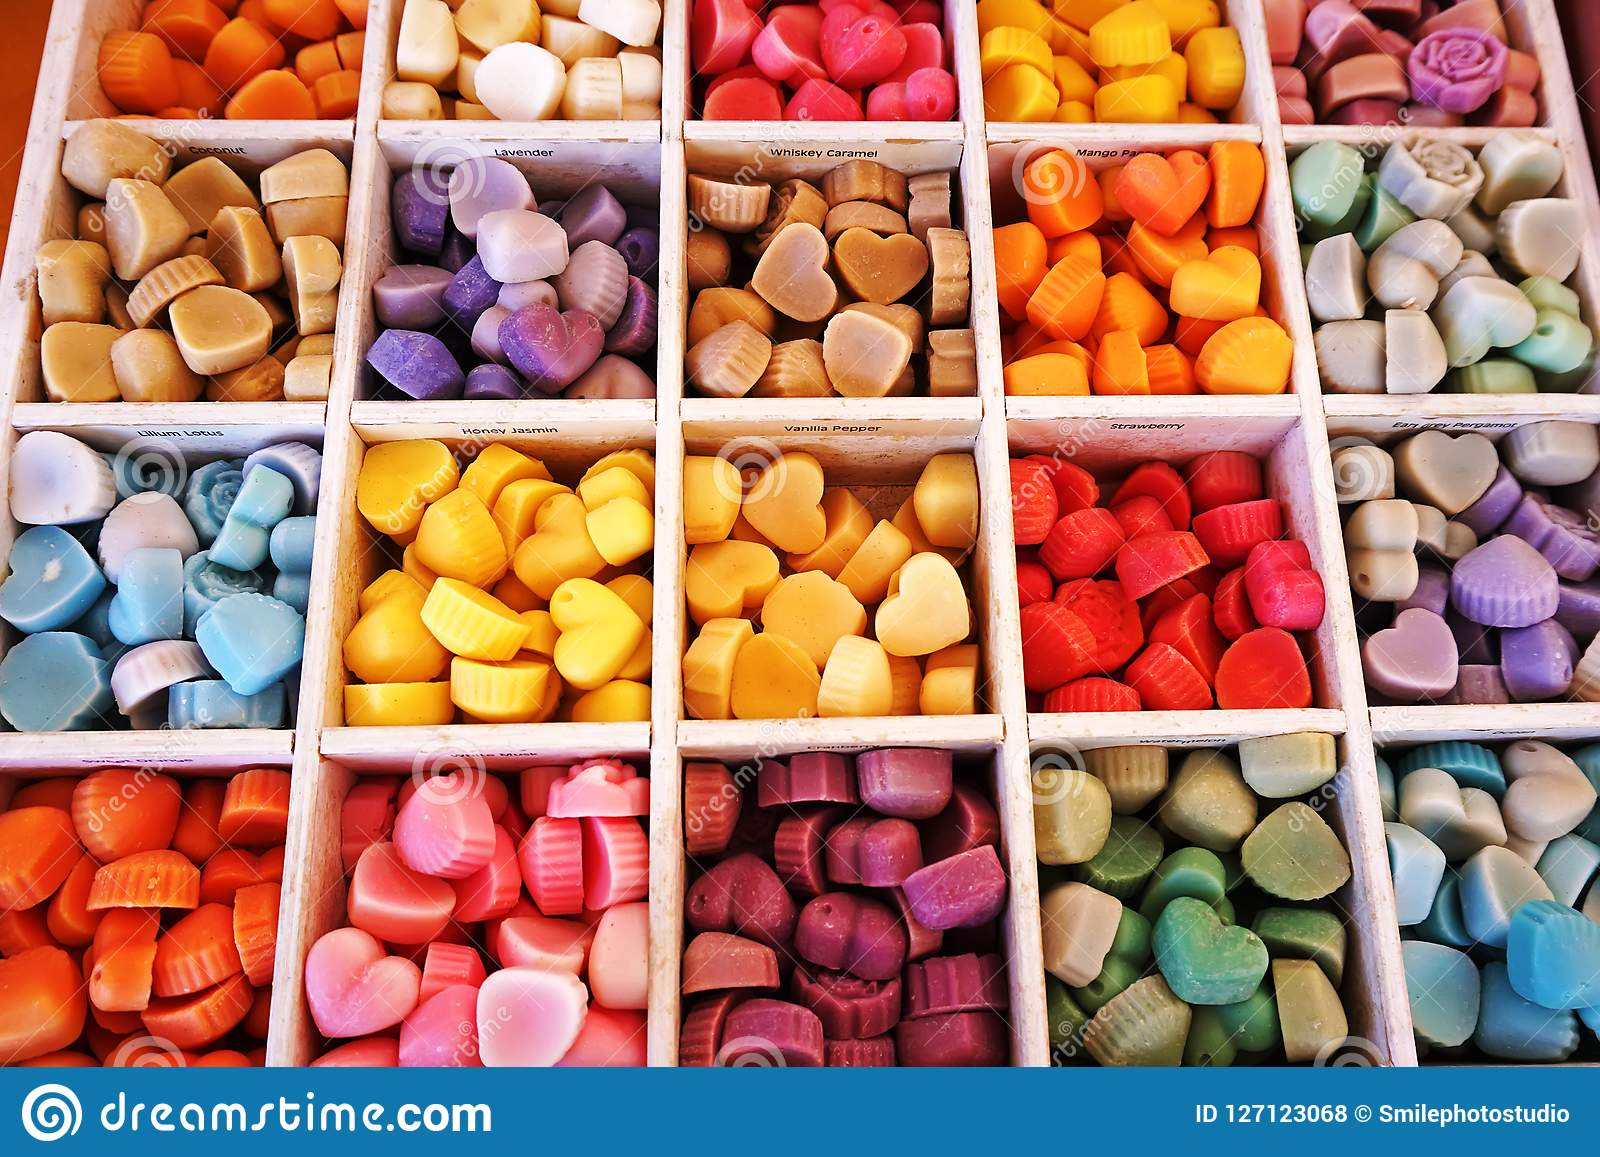 Colorful candy in a box